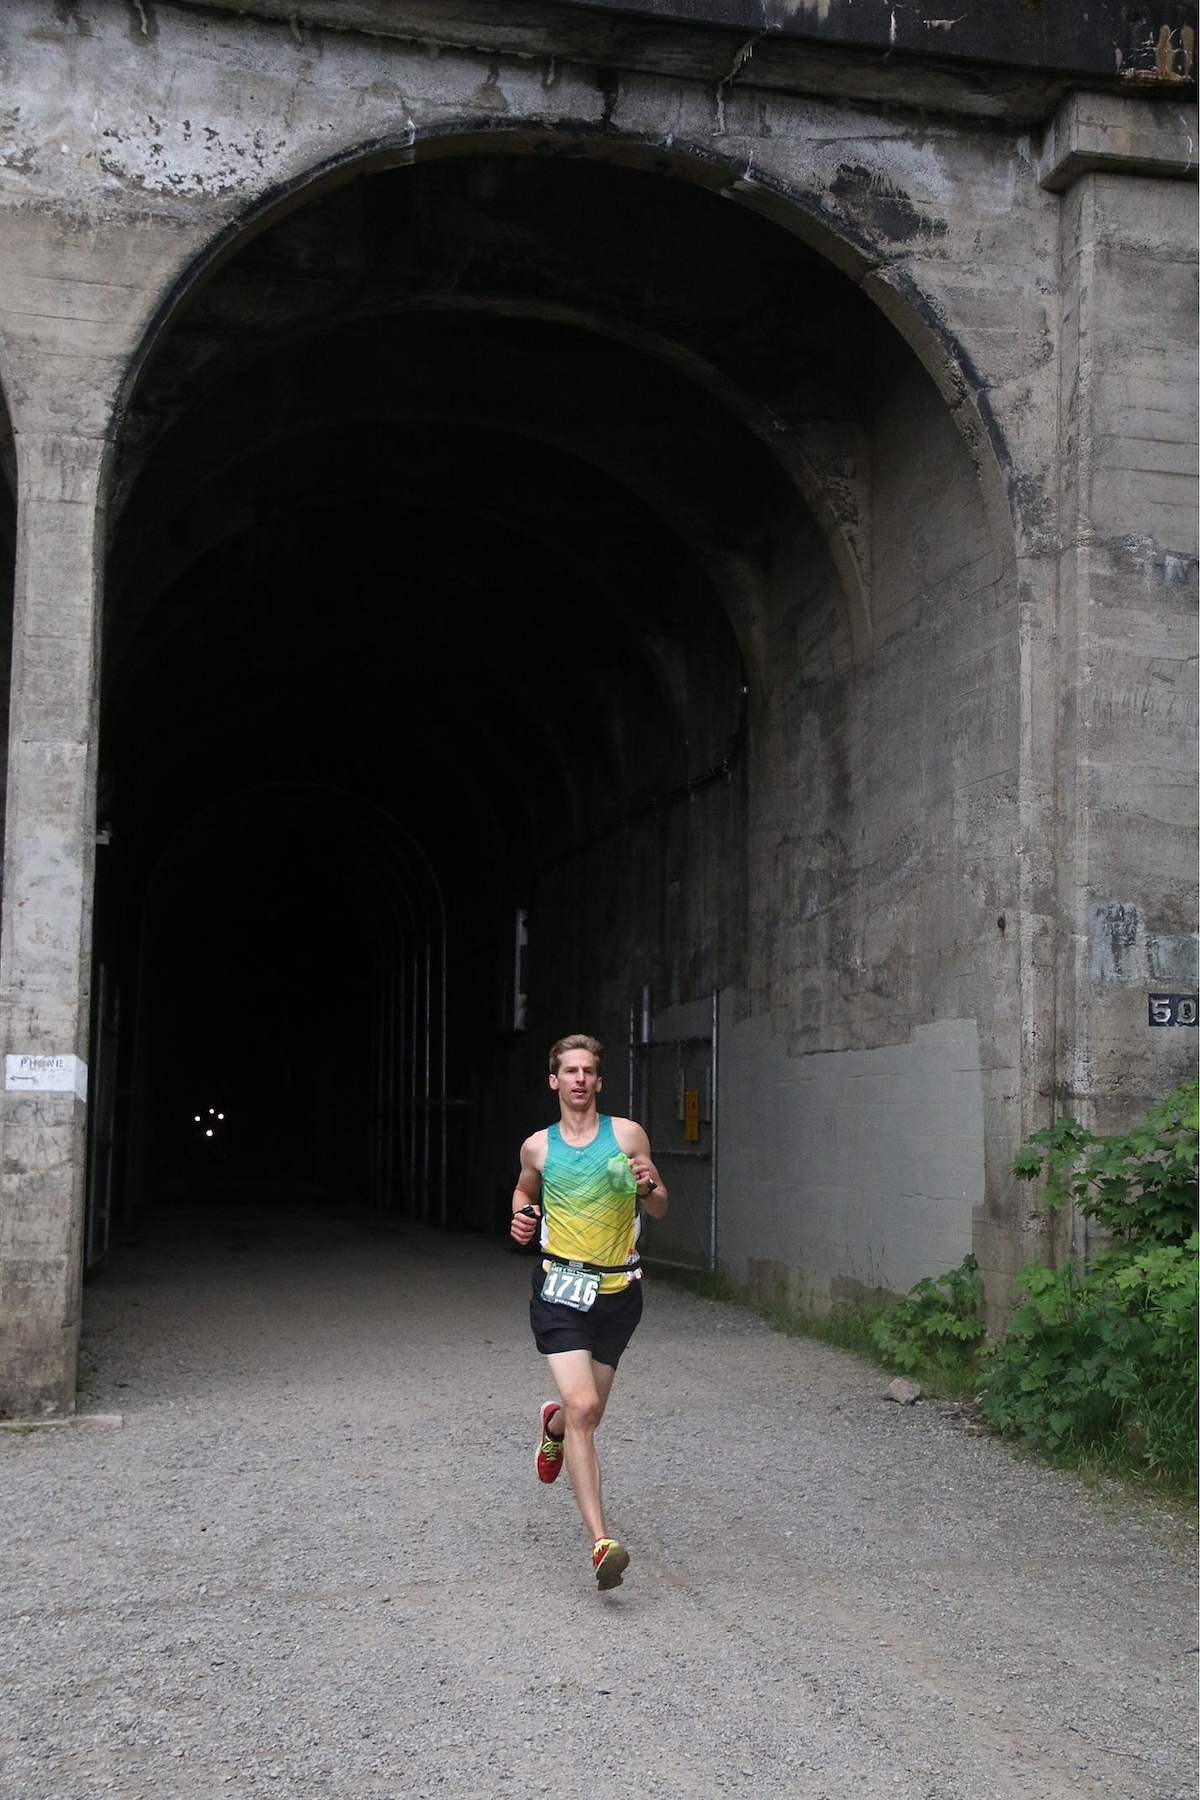 greg-marathon-outside-tunnel